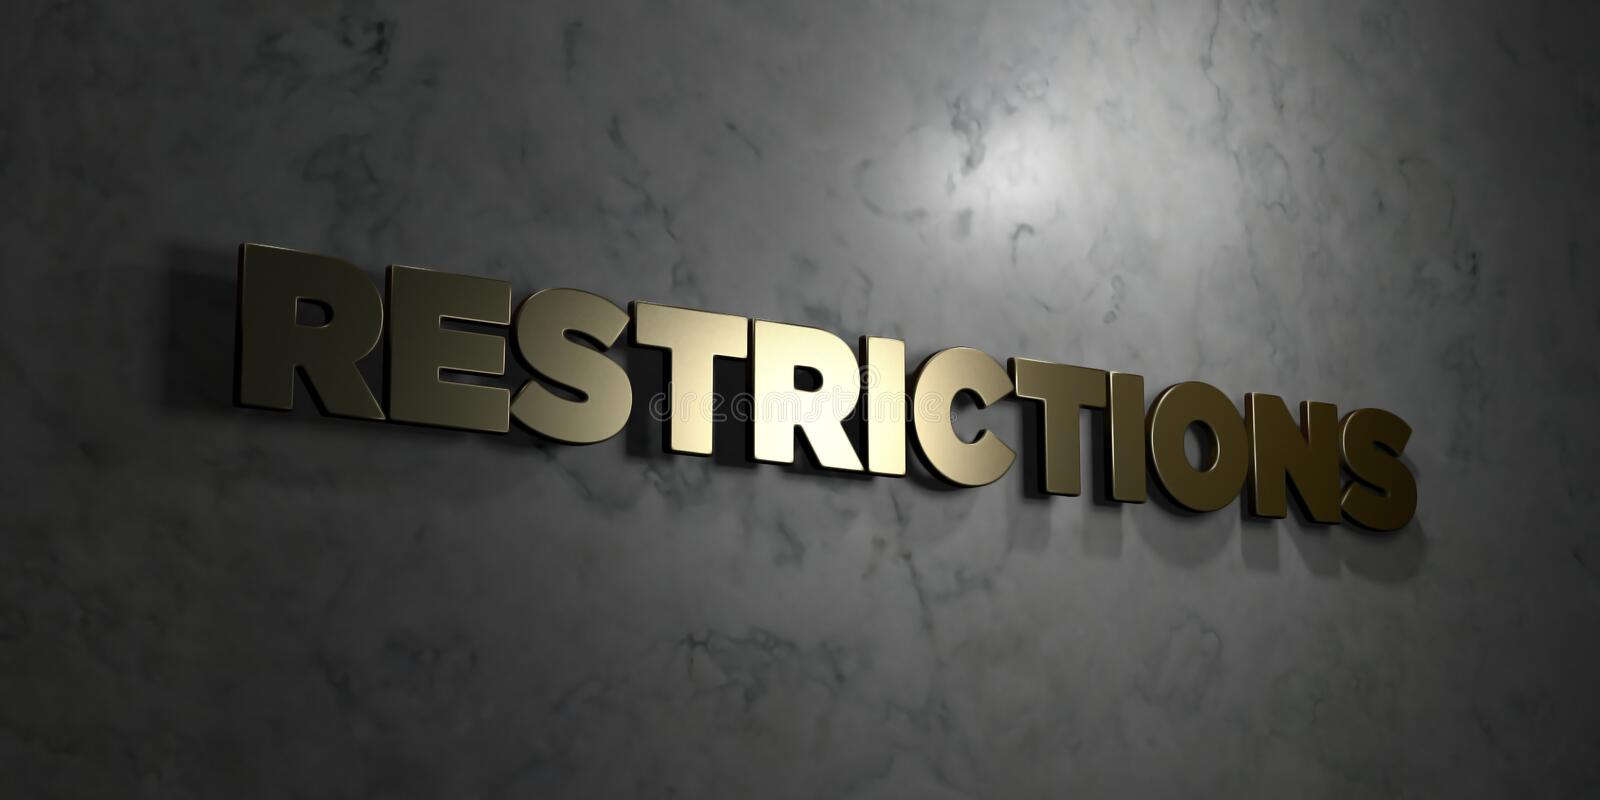 Restrictions - Gold text on black background - 3D rendered royalty free stock picture. This image can be used for an online website banner ad or a print vector illustration